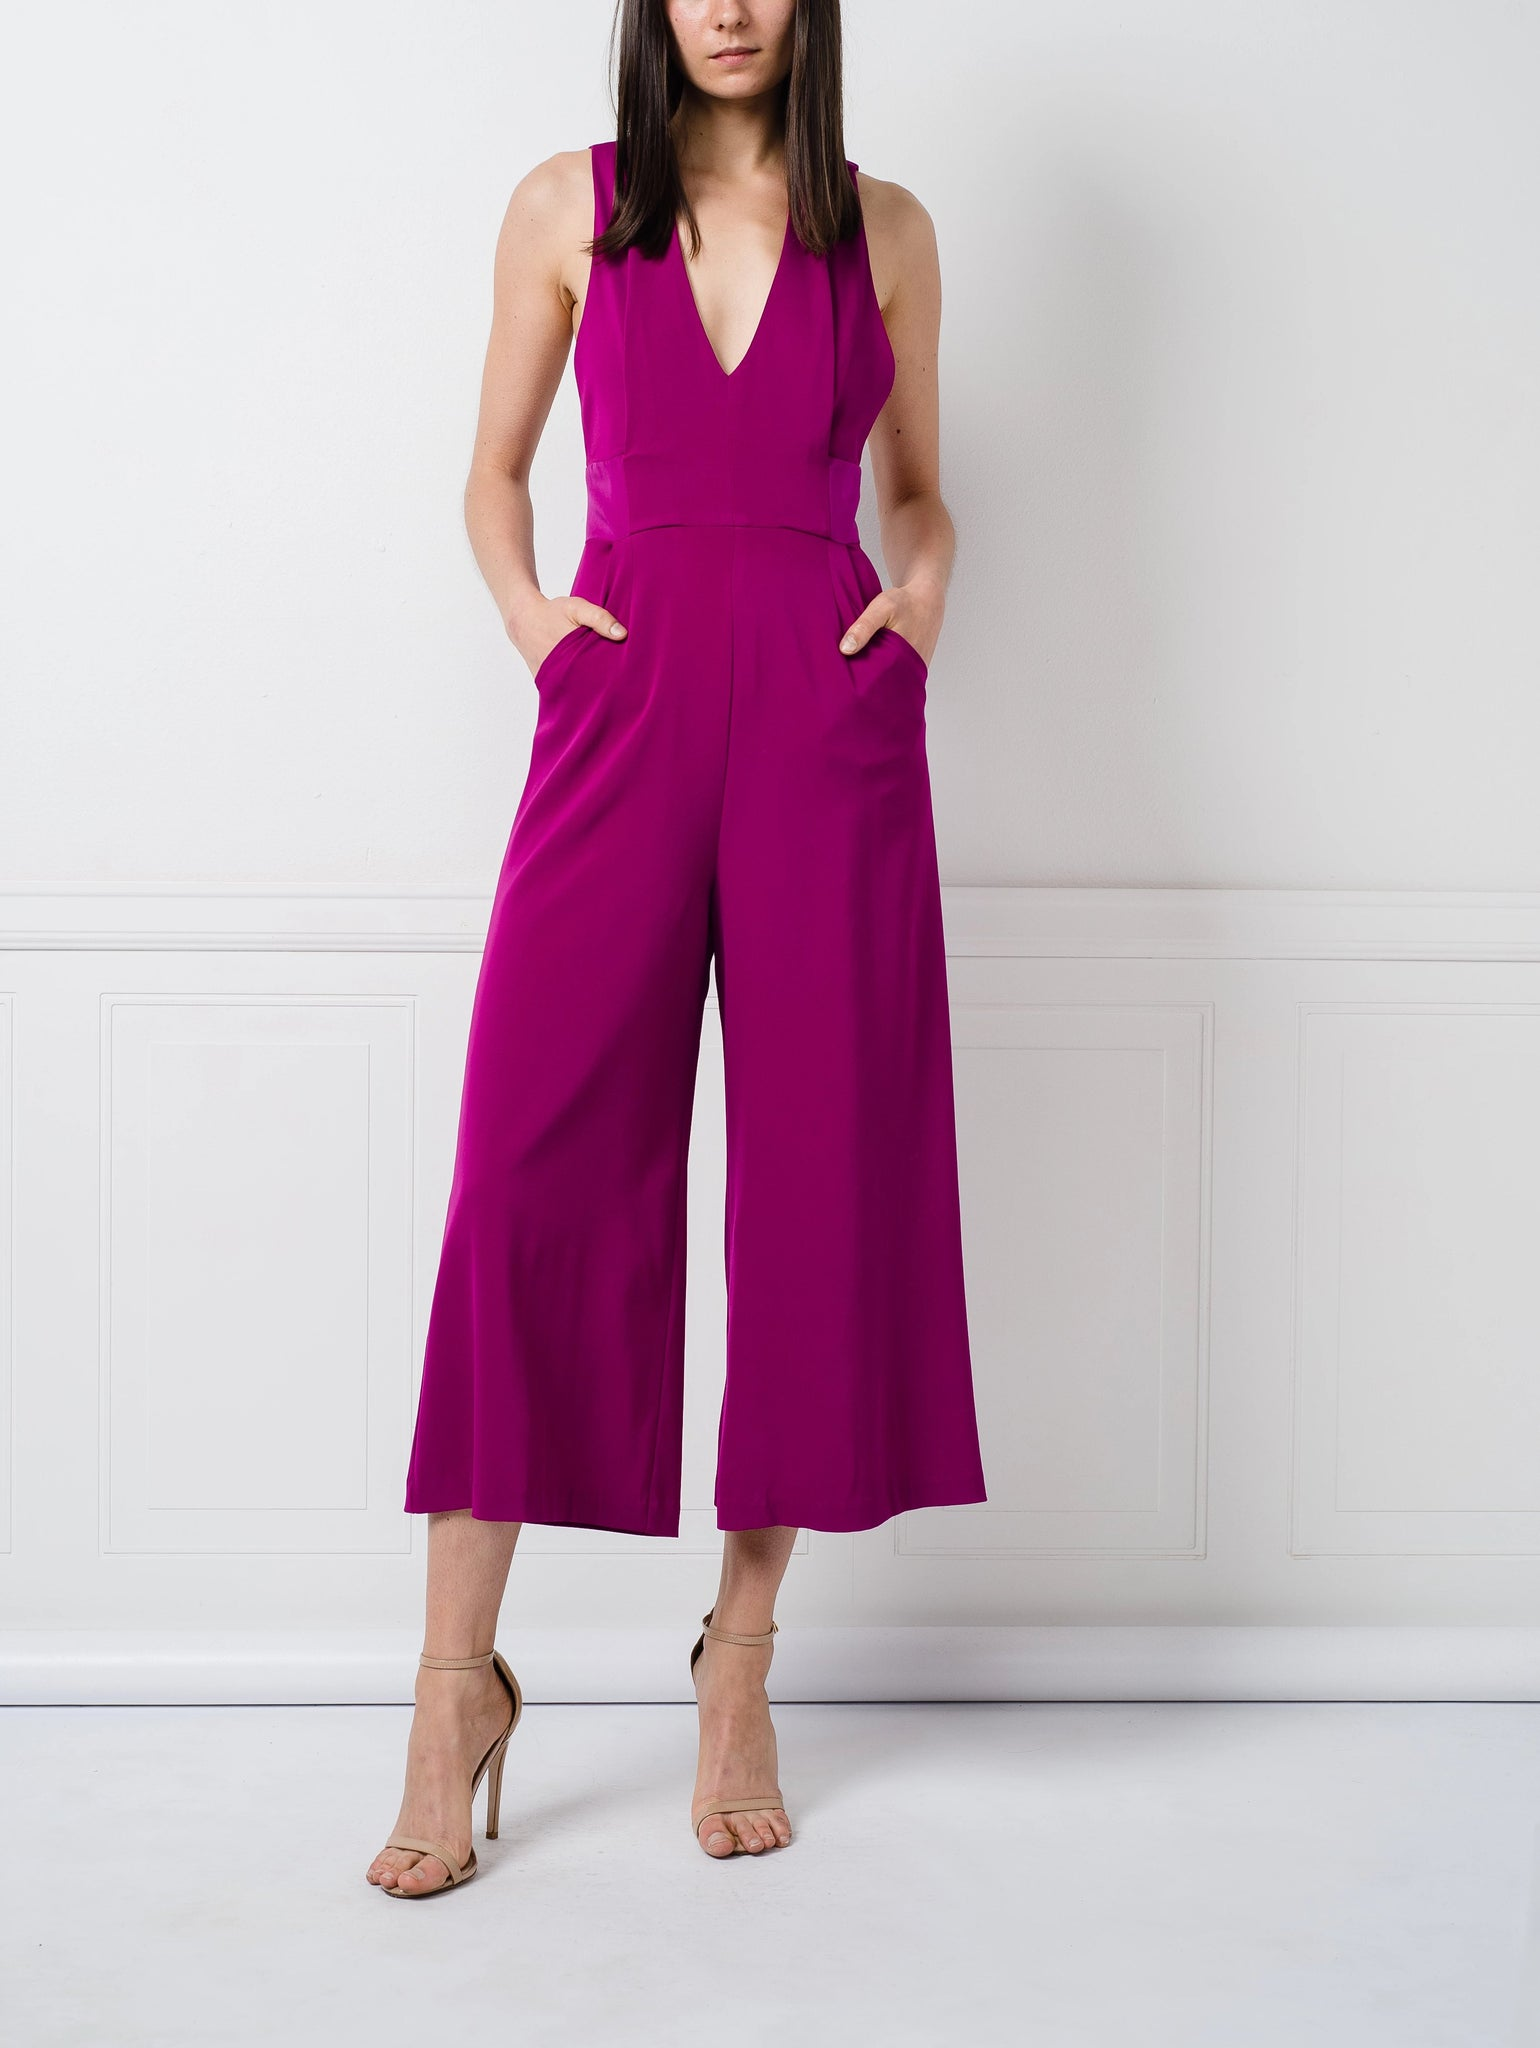 SALE | Zain Jumpsuit in Fuchsia